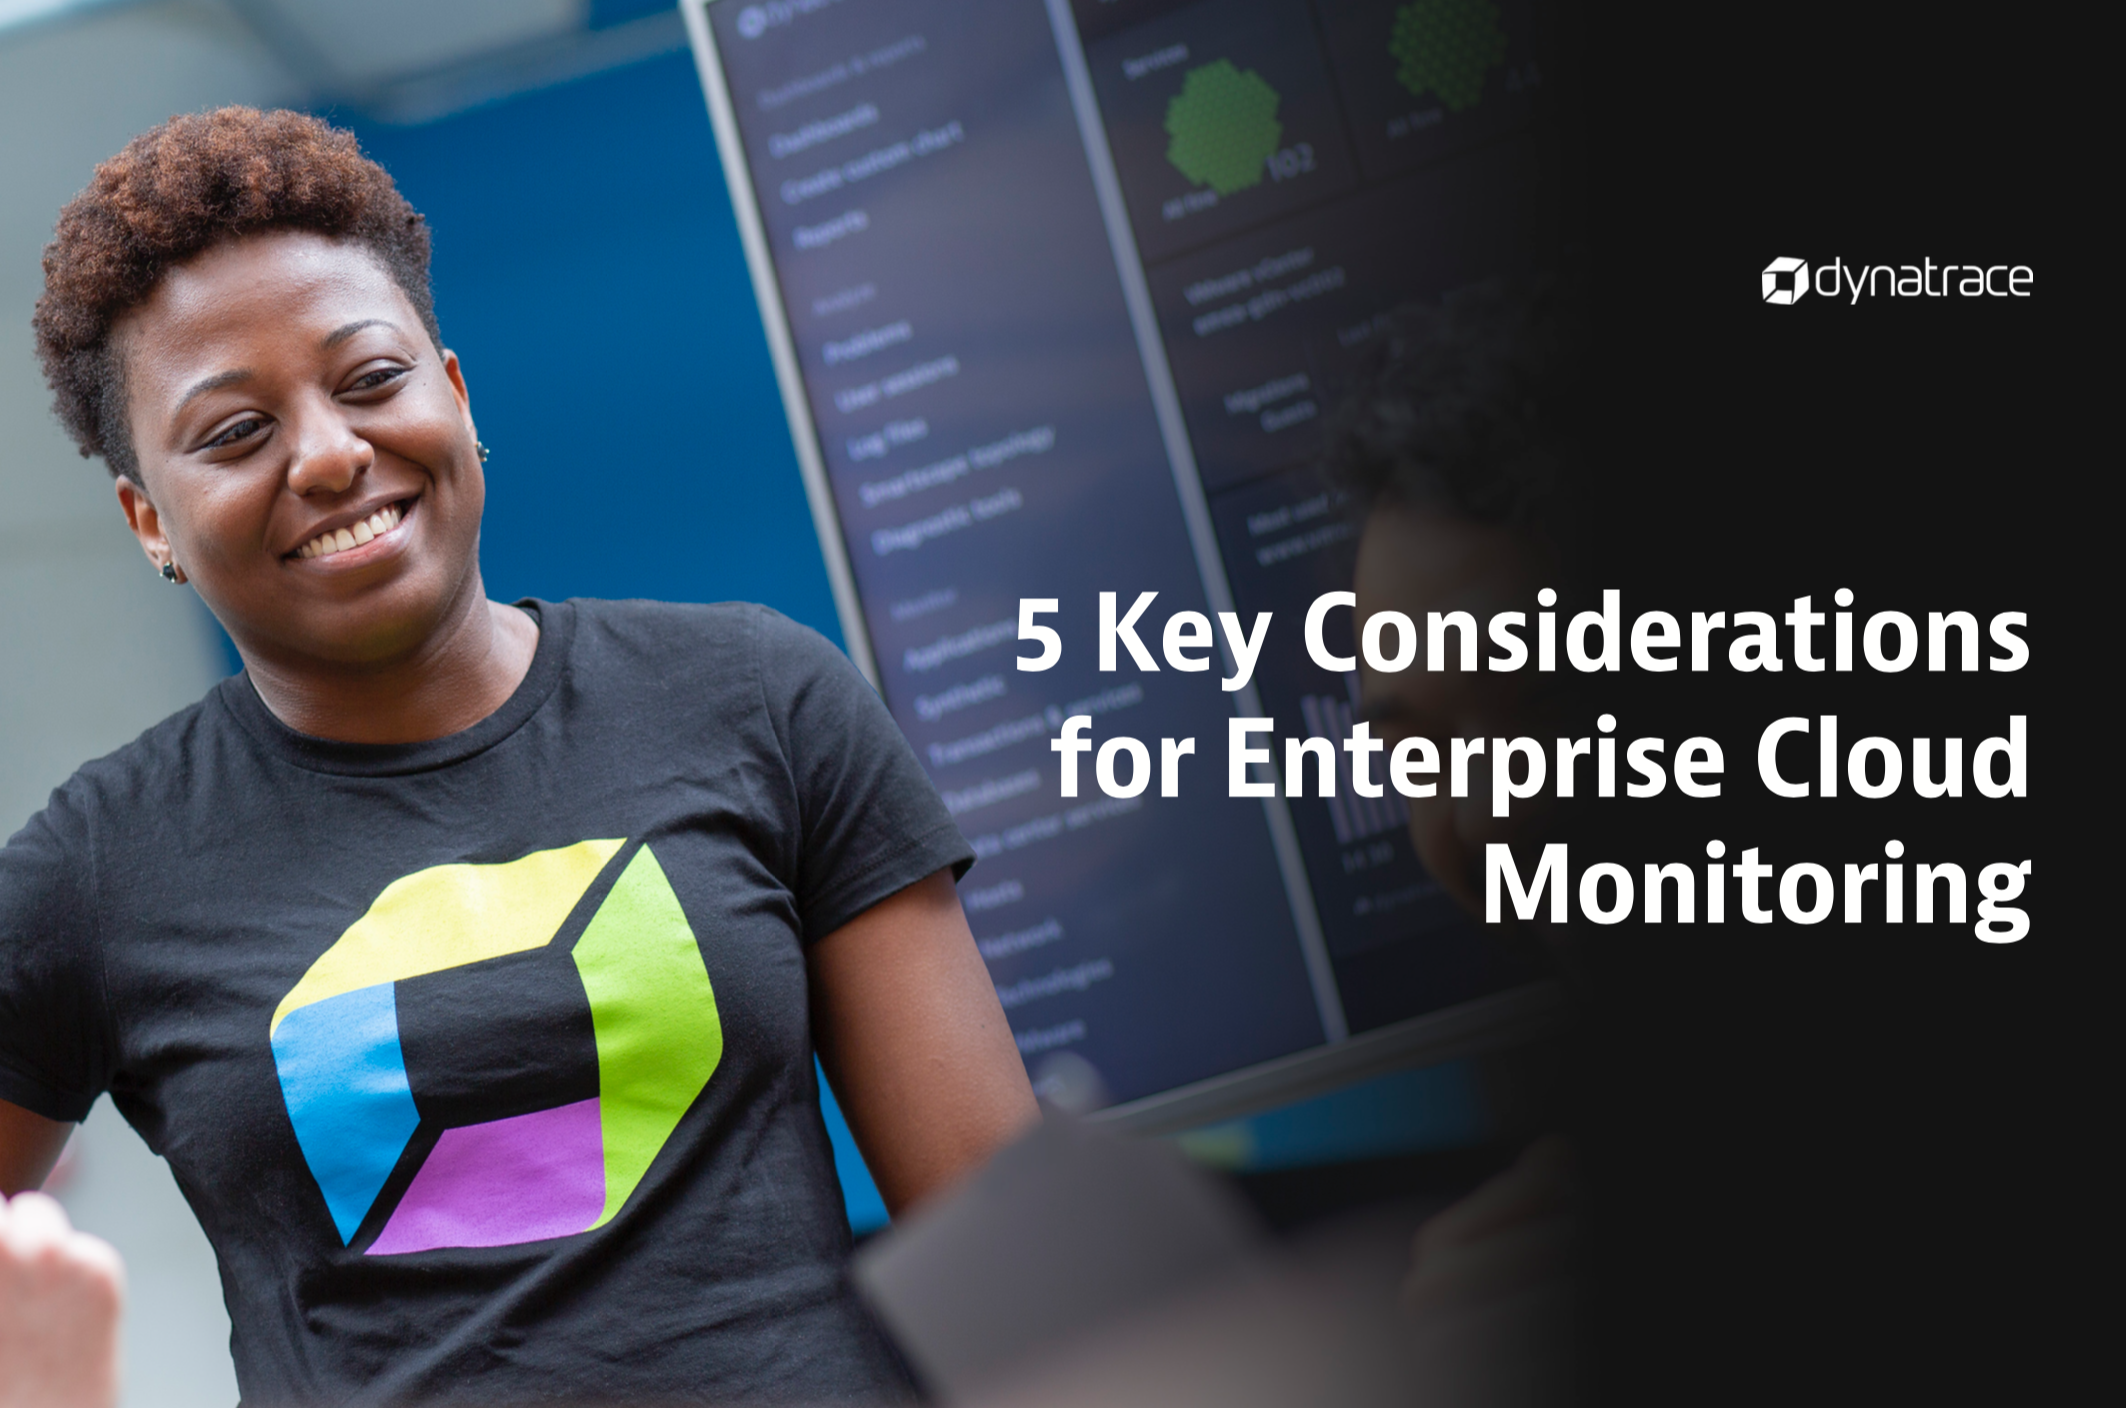 5 Key Considerations for Enterprise Cloud Monitoring